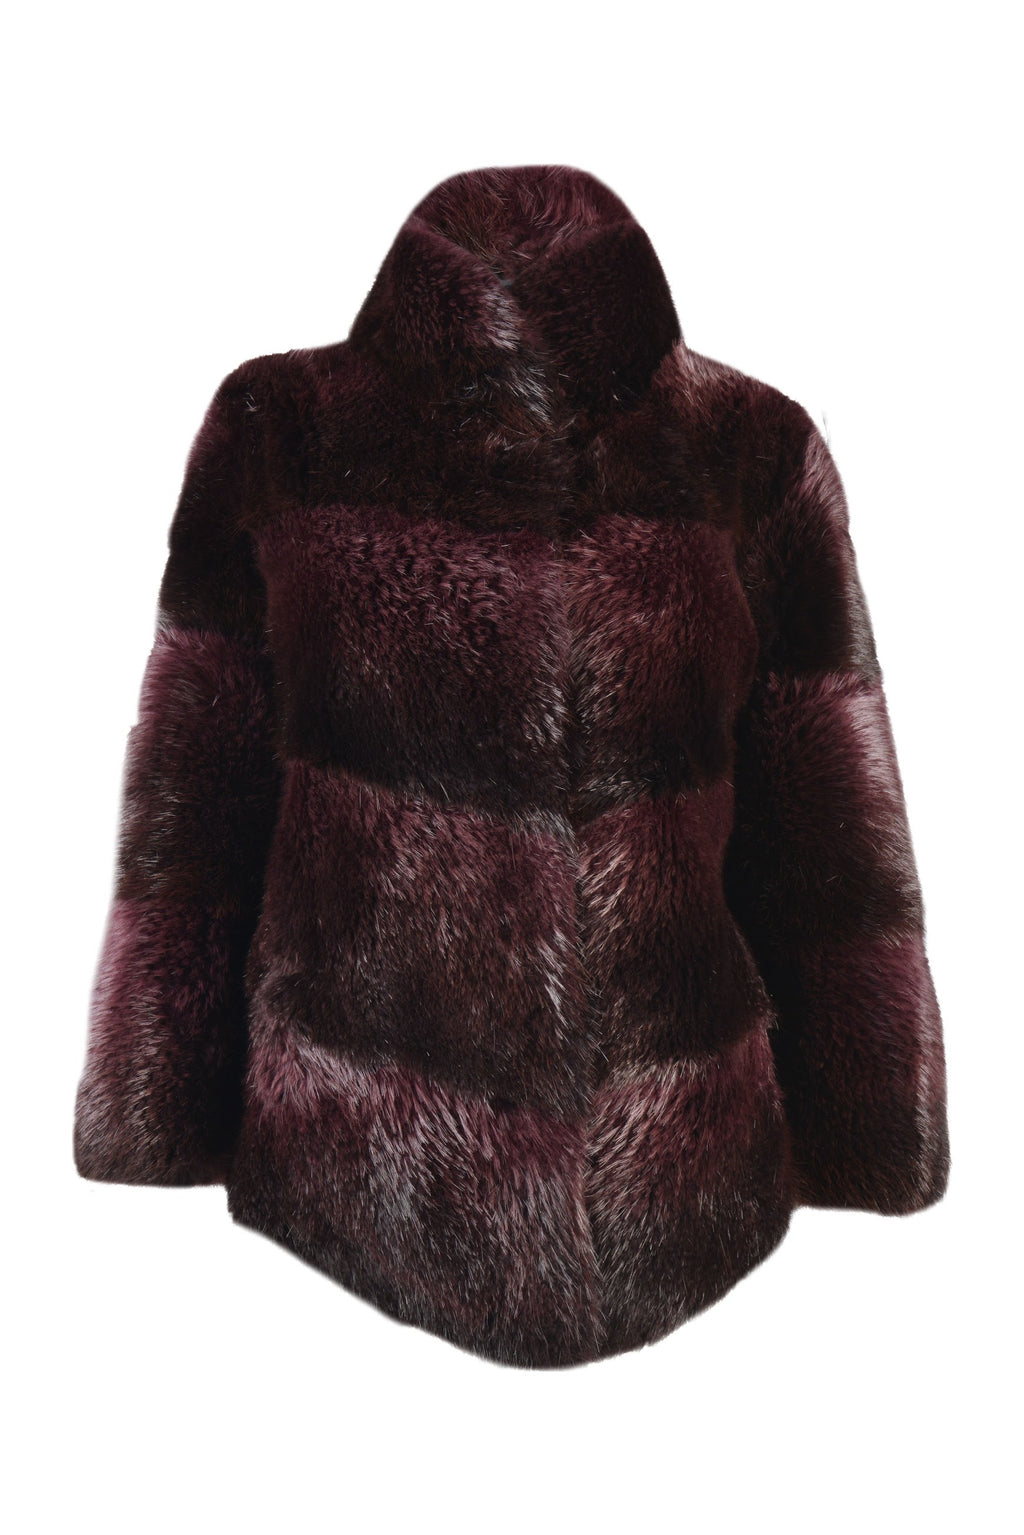 Beaver Jacket in Burgundy